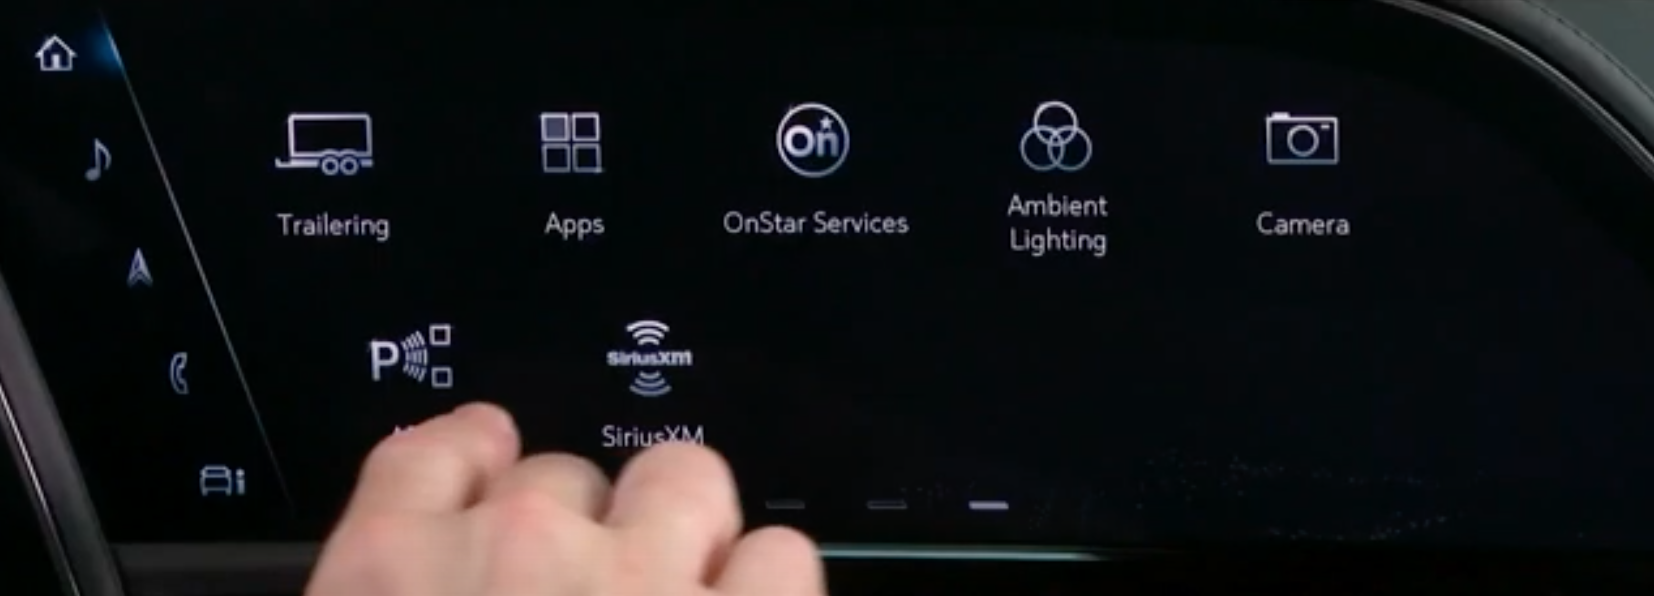 Various apps that are in the infotainment system